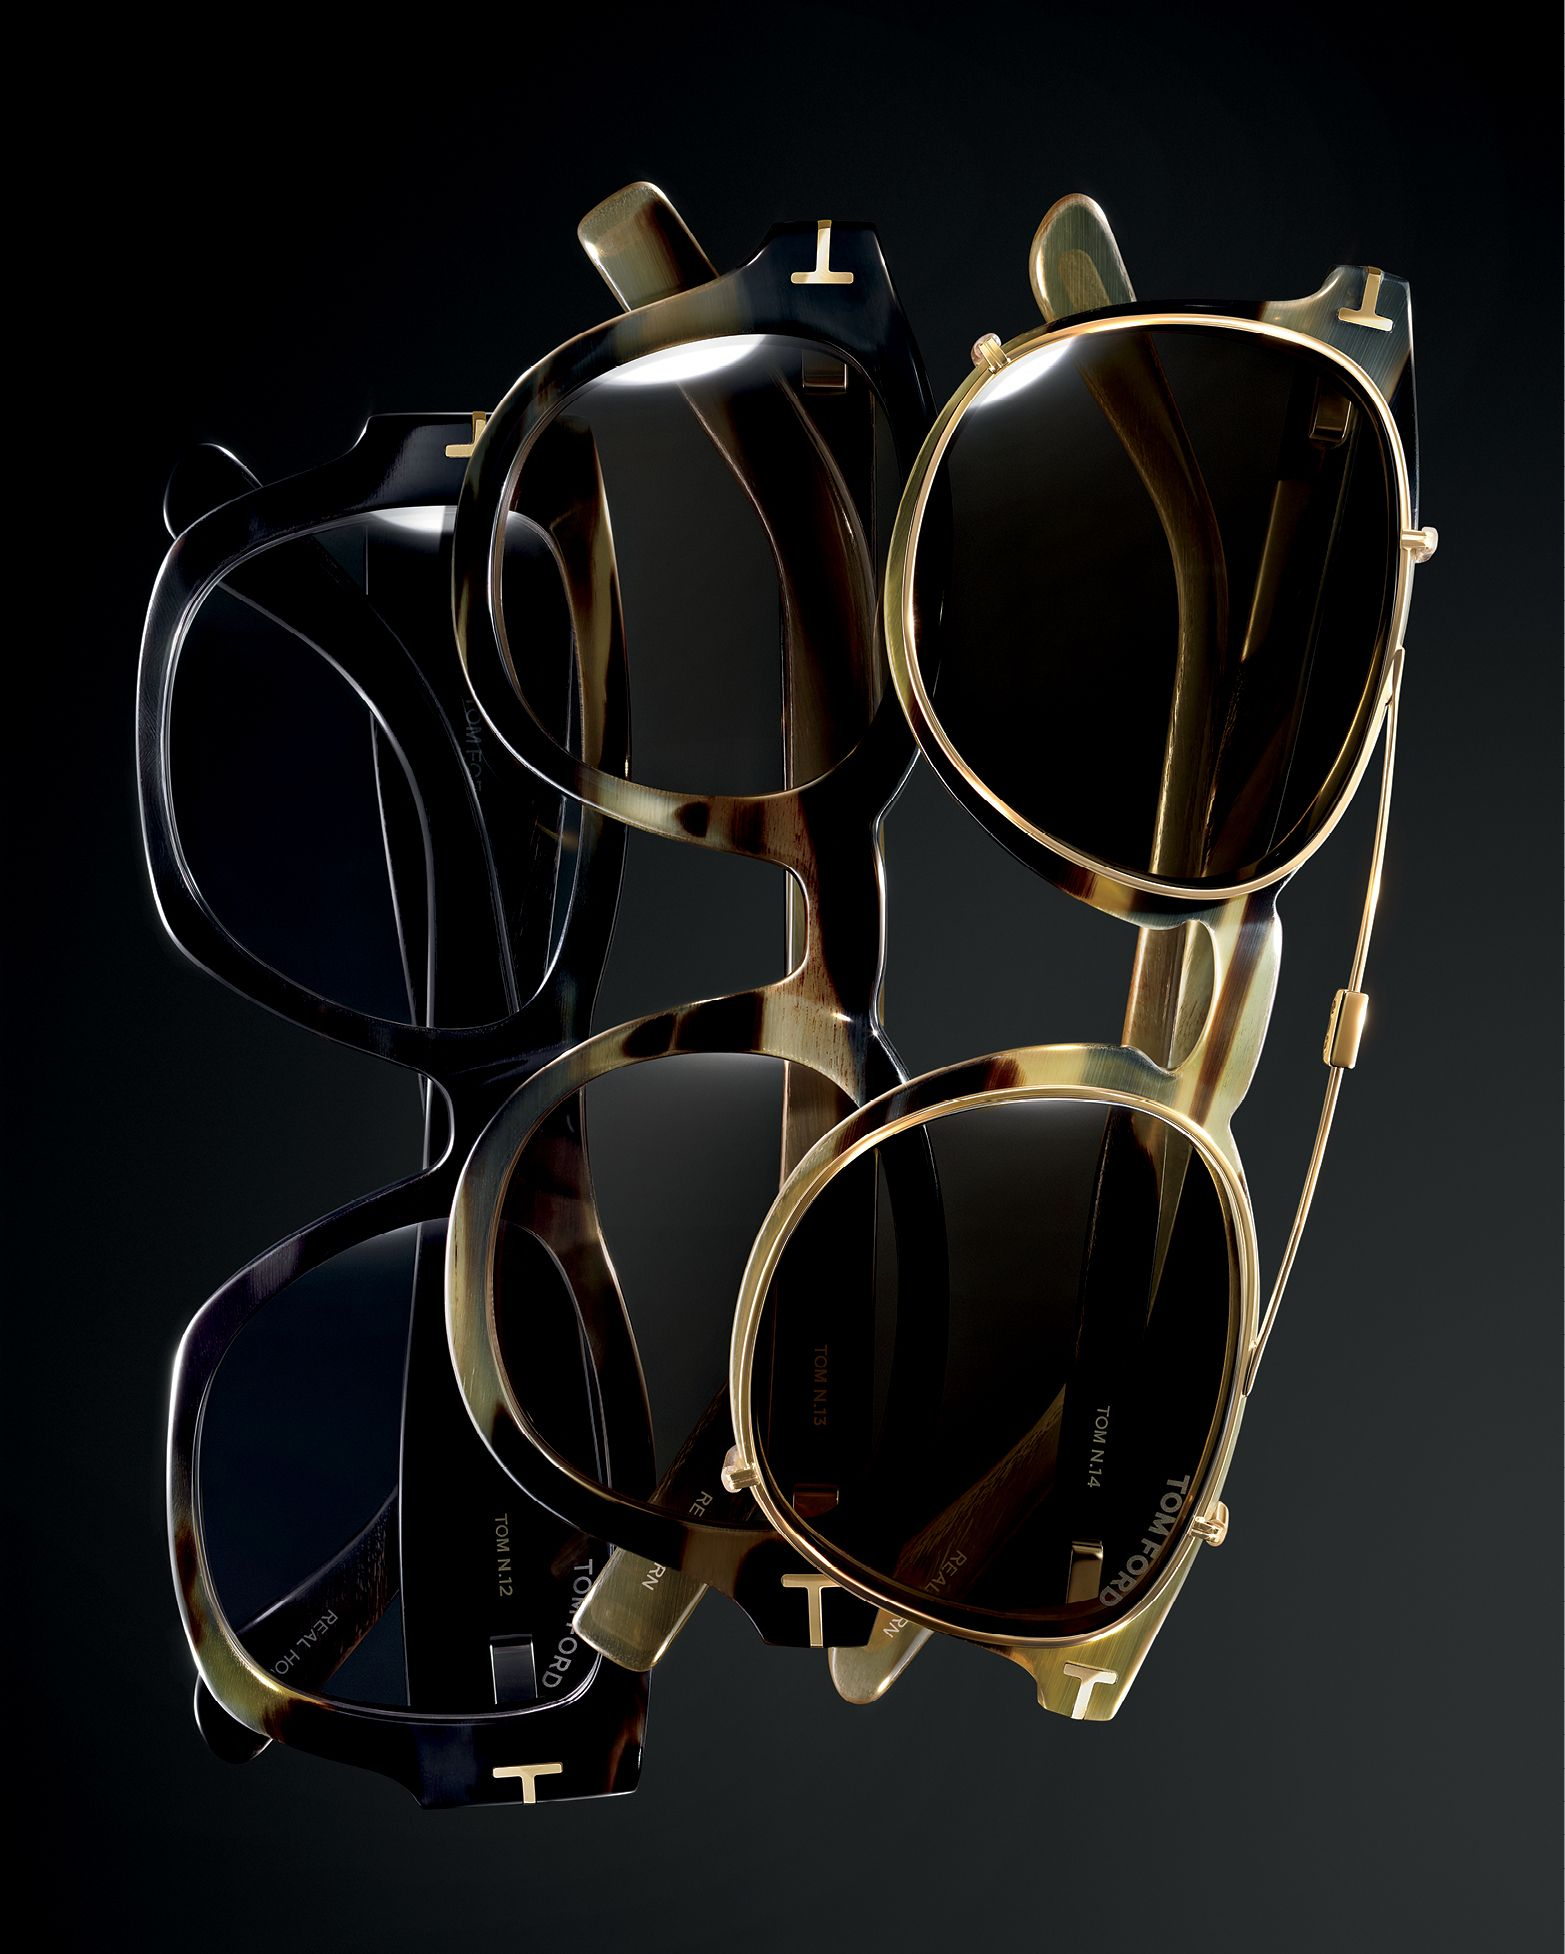 80a0a4022590 Introducing TOM FORD Private Collection styles TOM N.12, TOM N.13, and TOM  N.14. #TOMFORD #TFPRIVATECOLLECTION